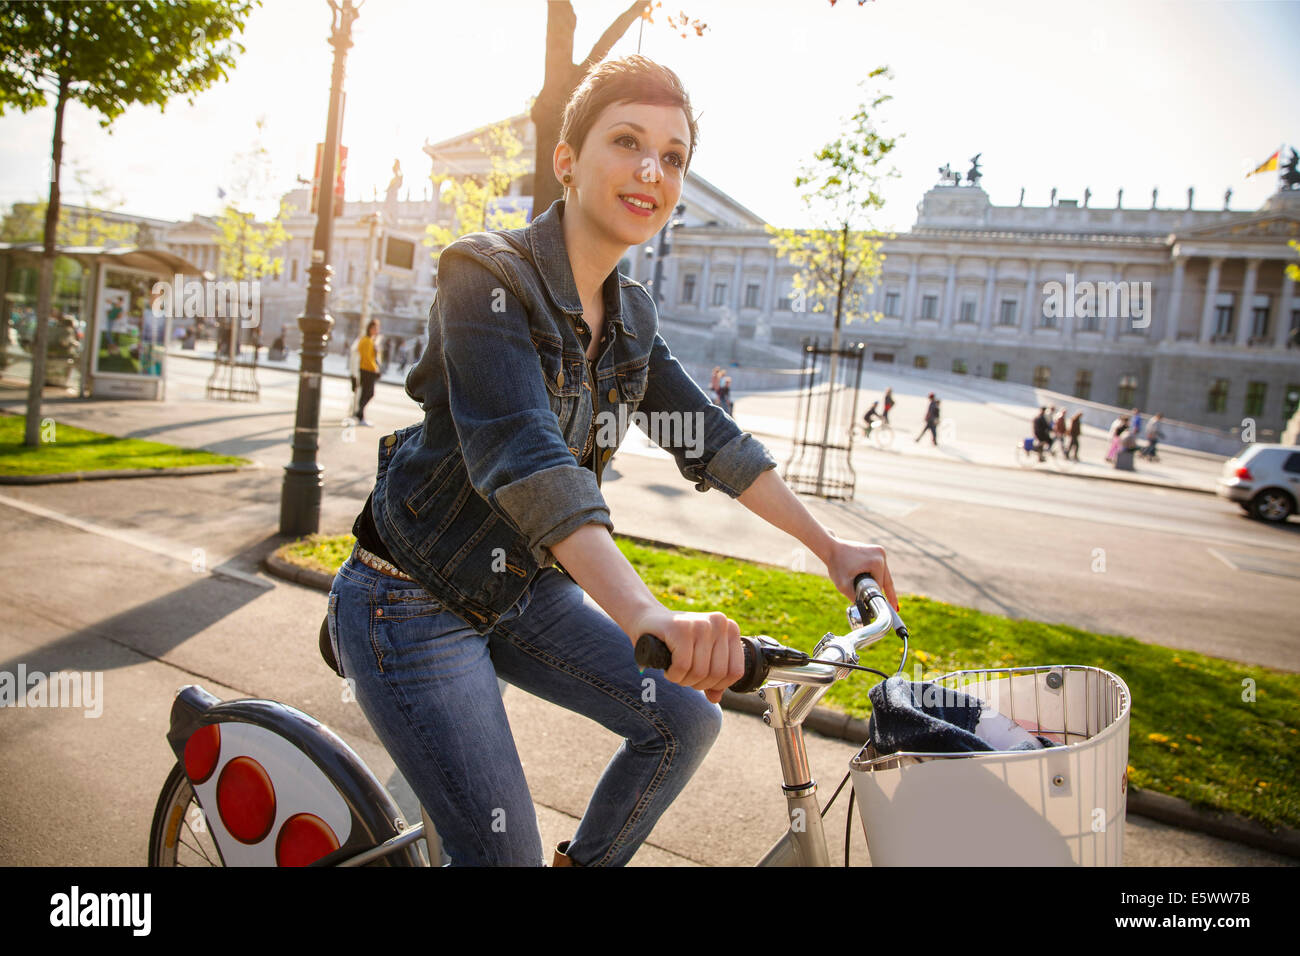 Young adult woman cycling through city, Vienne, Autriche Photo Stock